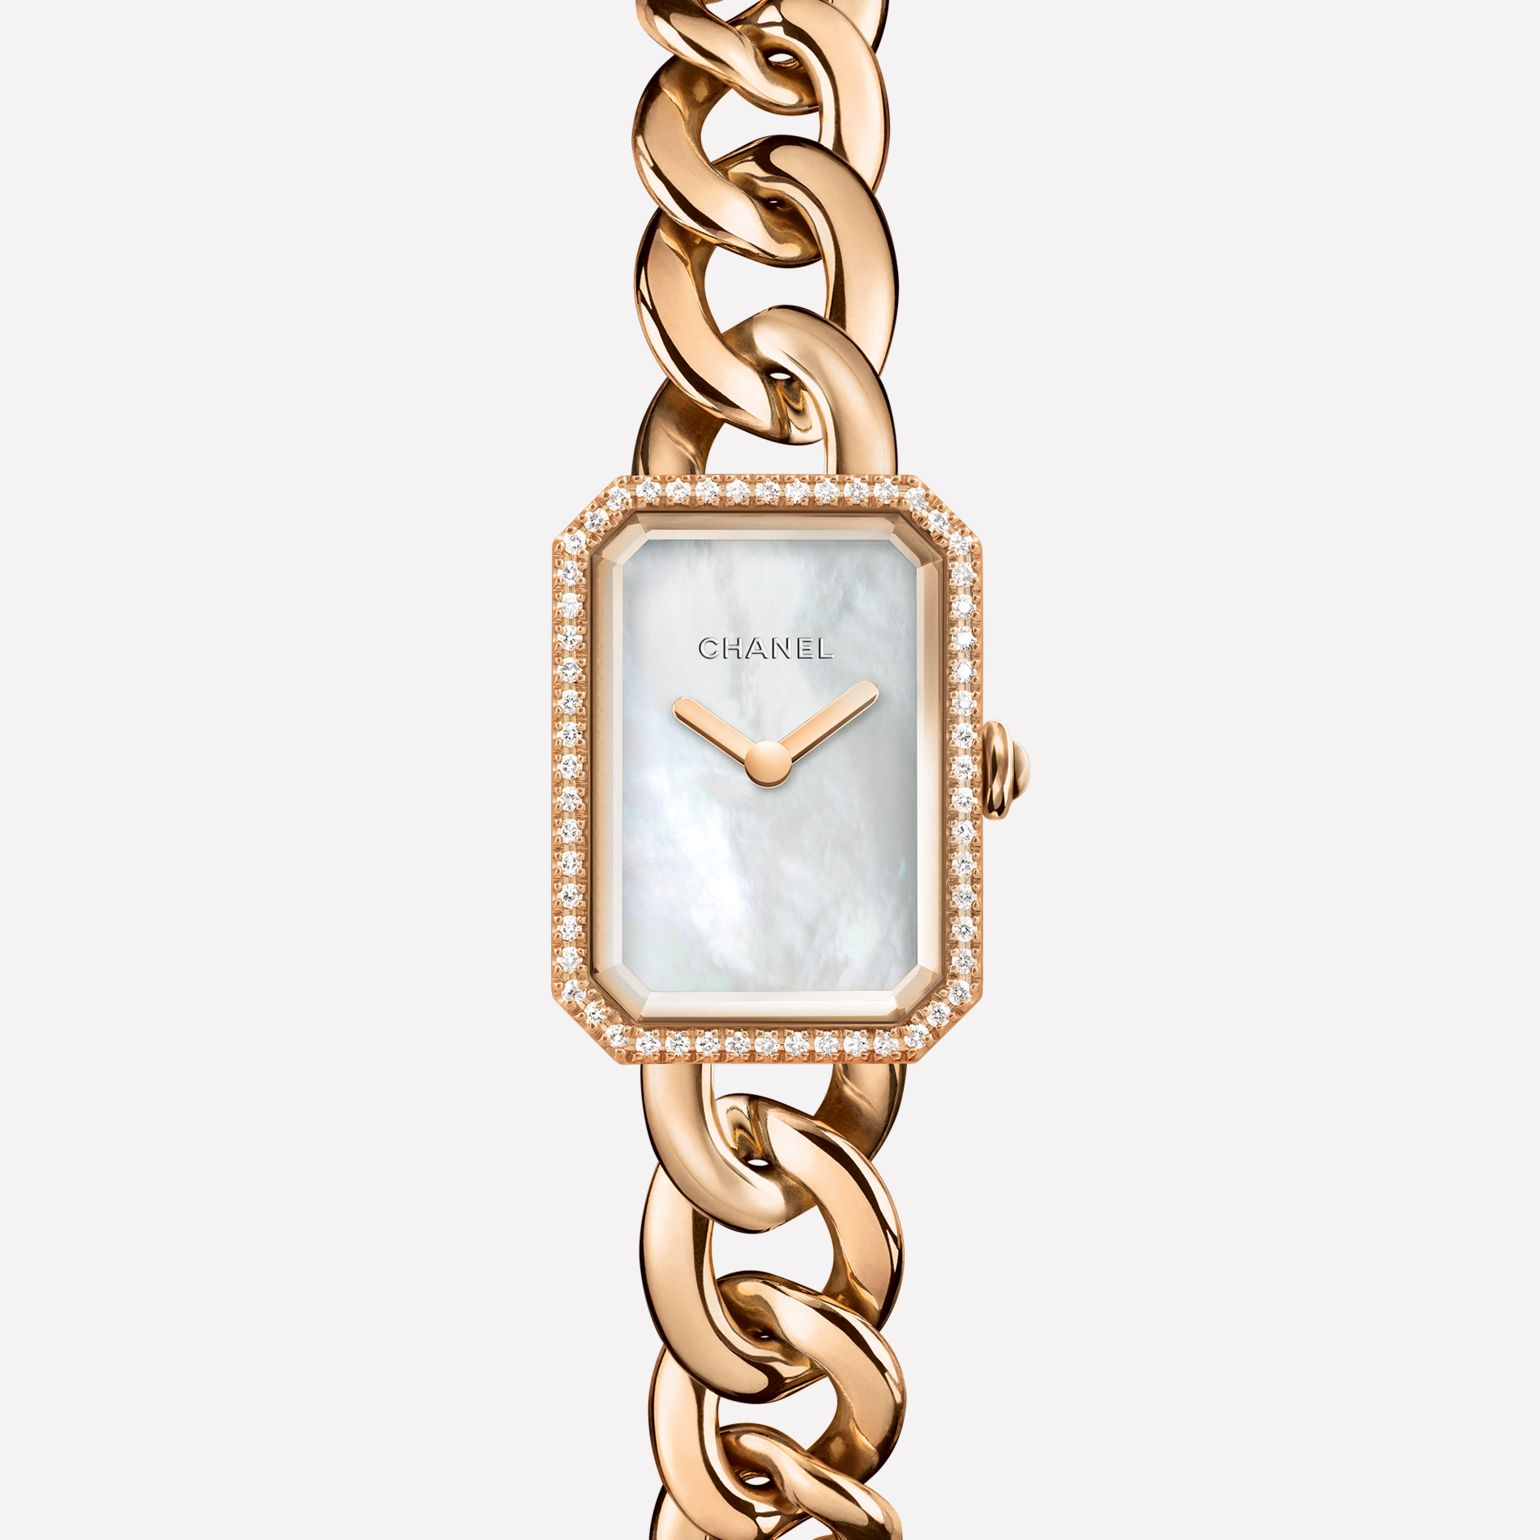 Première Chaîne Watch Small version, BEIGE GOLD and diamonds, white mother-of-pearl dial